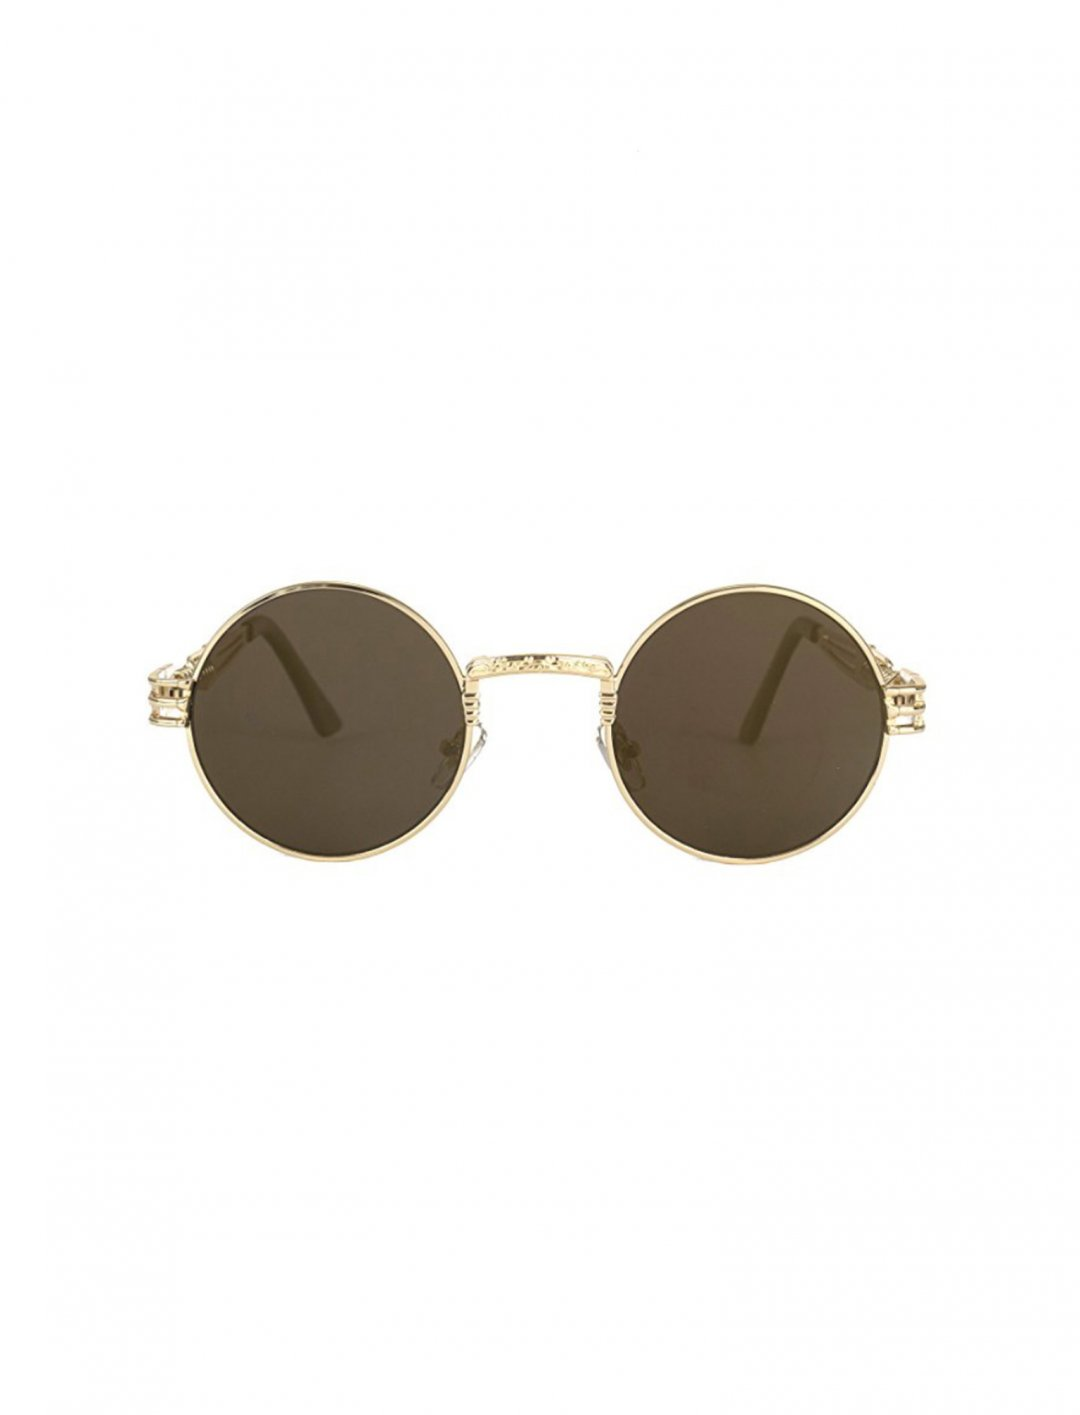 "Pro Acme Round Steampunk Sunglasses {""id"":16,""product_section_id"":1,""name"":""Accessories"",""order"":15} Pro Acme"